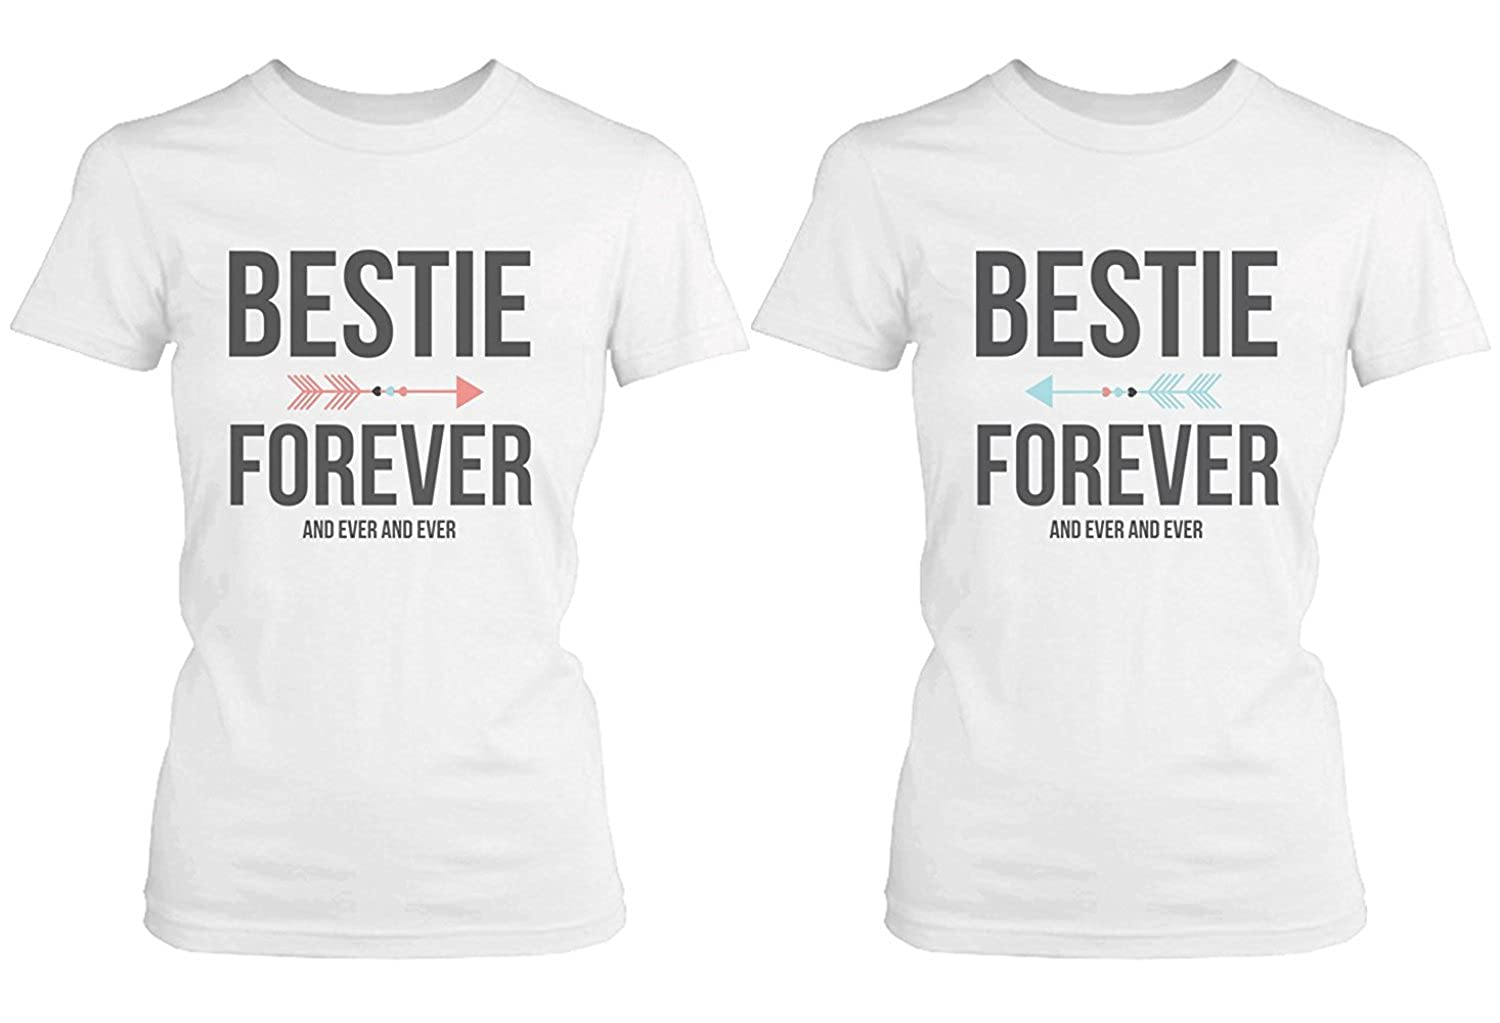 15316bca Amazon.com: Best Friend Shirts - Bestie Forever and Ever Matching White T- Shirts: Clothing